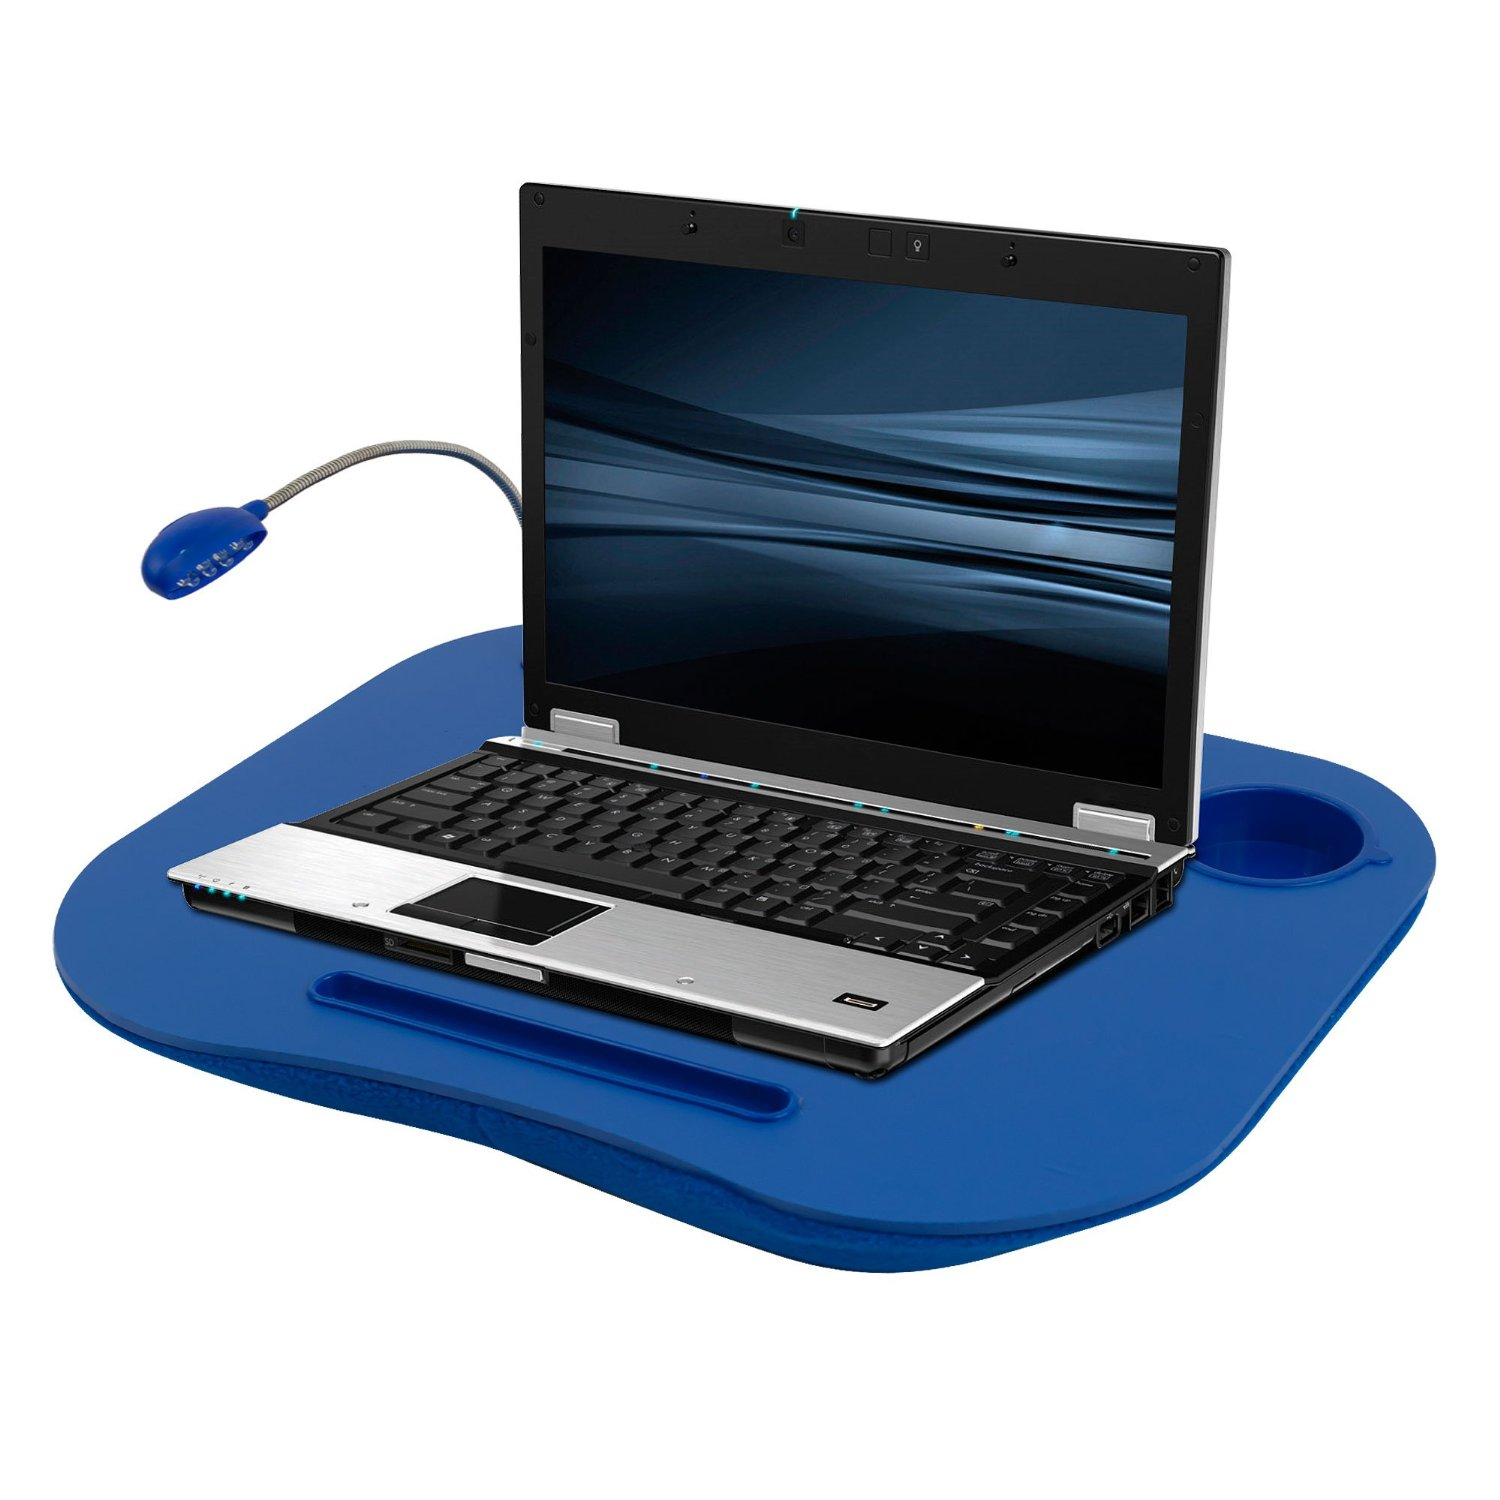 Laptop Lap Desks With Light Reviews Ilapdesk Best